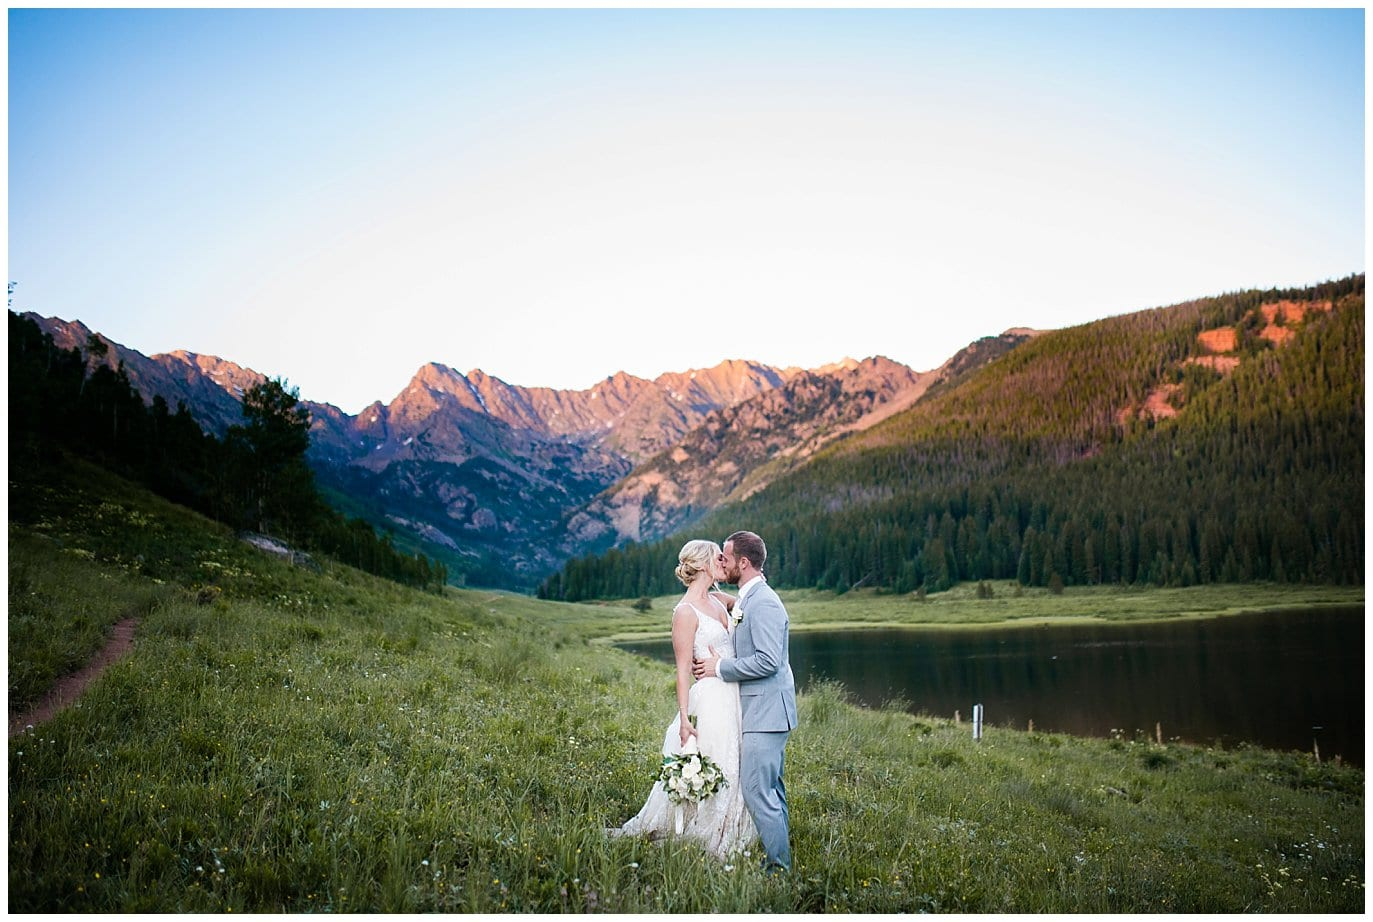 sunset photos by lake at Piney River Ranch wedding by Beaver Creek wedding photographer Jennie Crate, Photographer